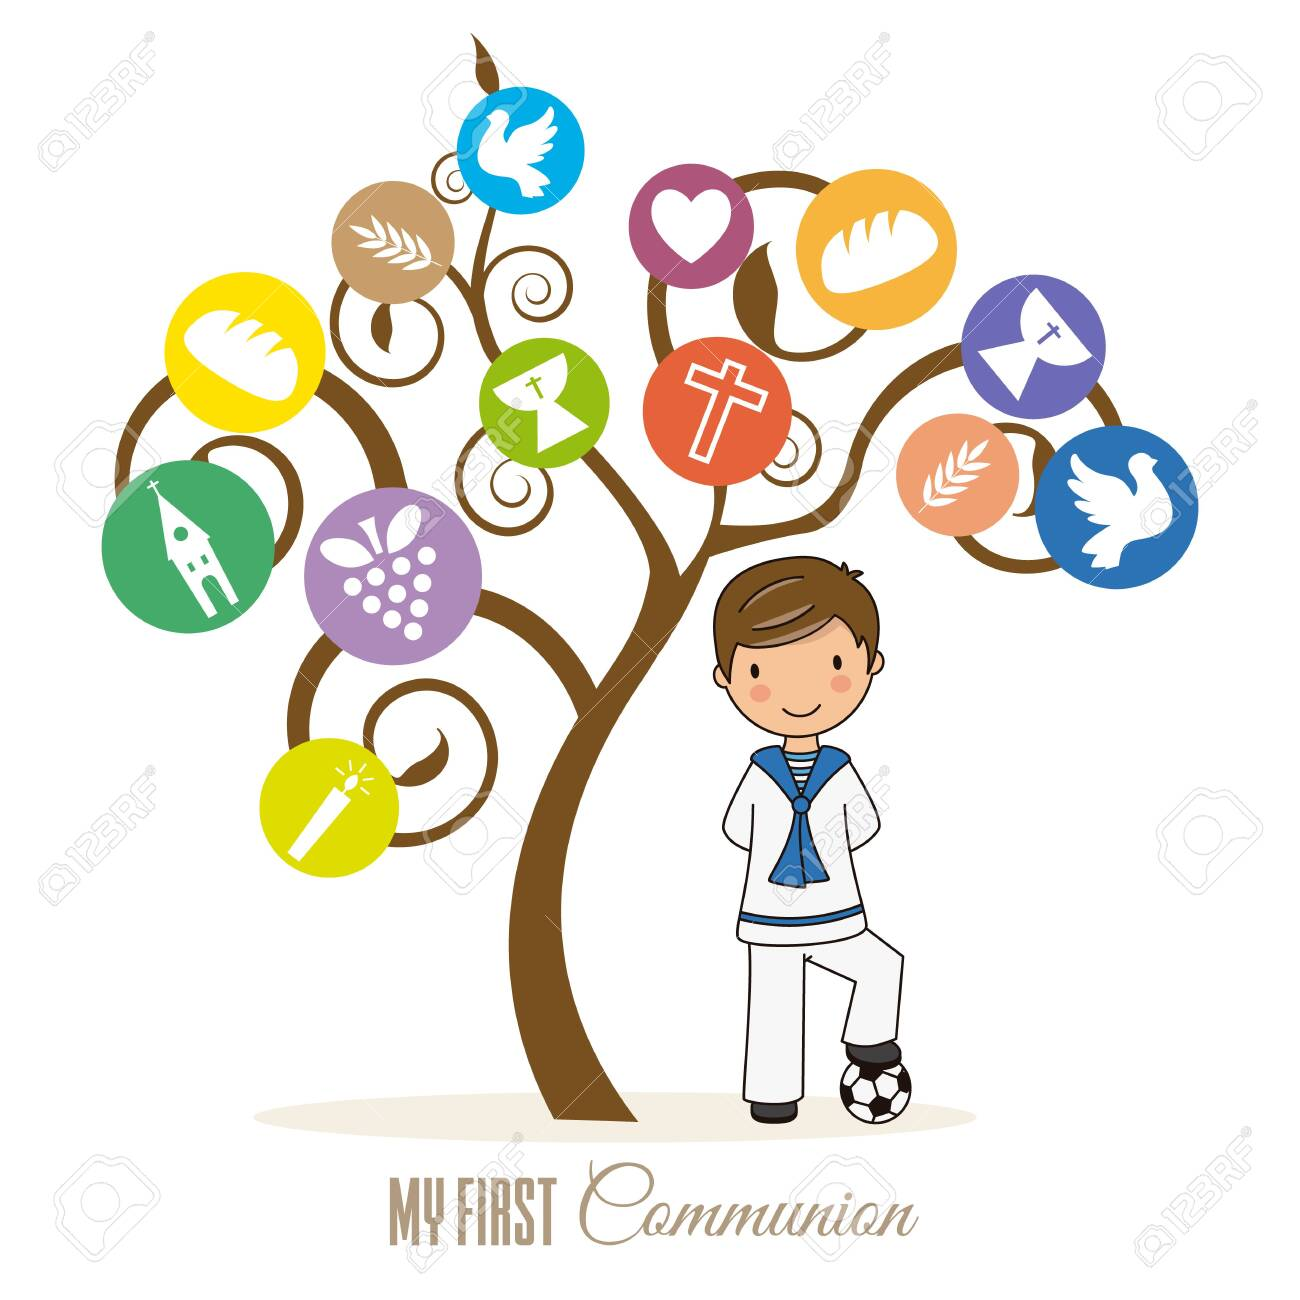 first communion card. Boy next to tree with religious icons - 125016351